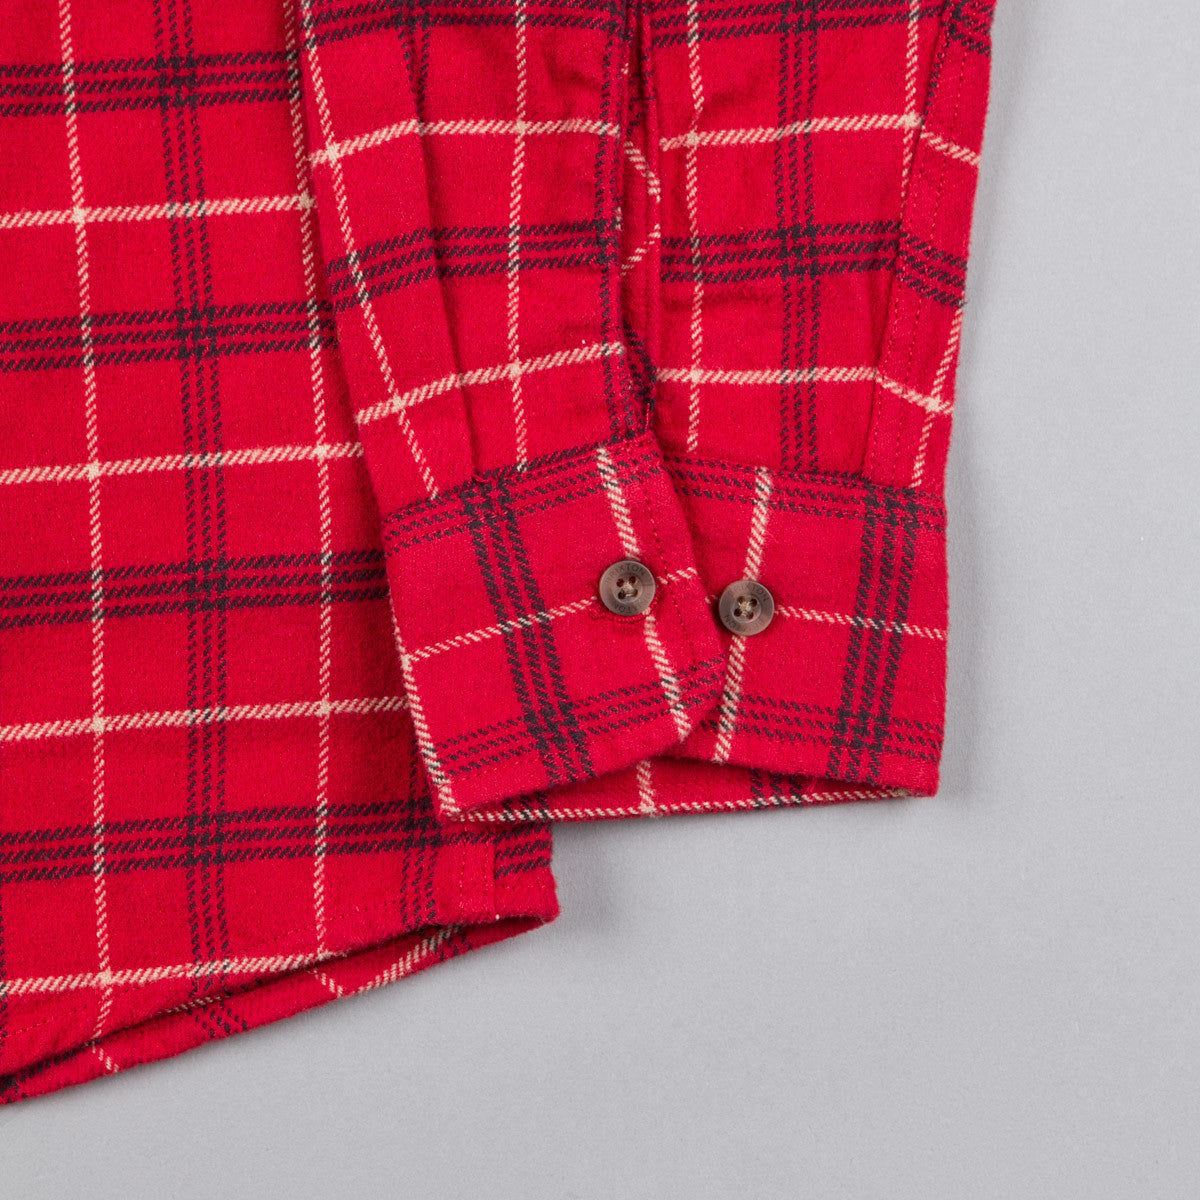 Brixton Bowery Long Sleeve Flannel Shirt - Red / Black